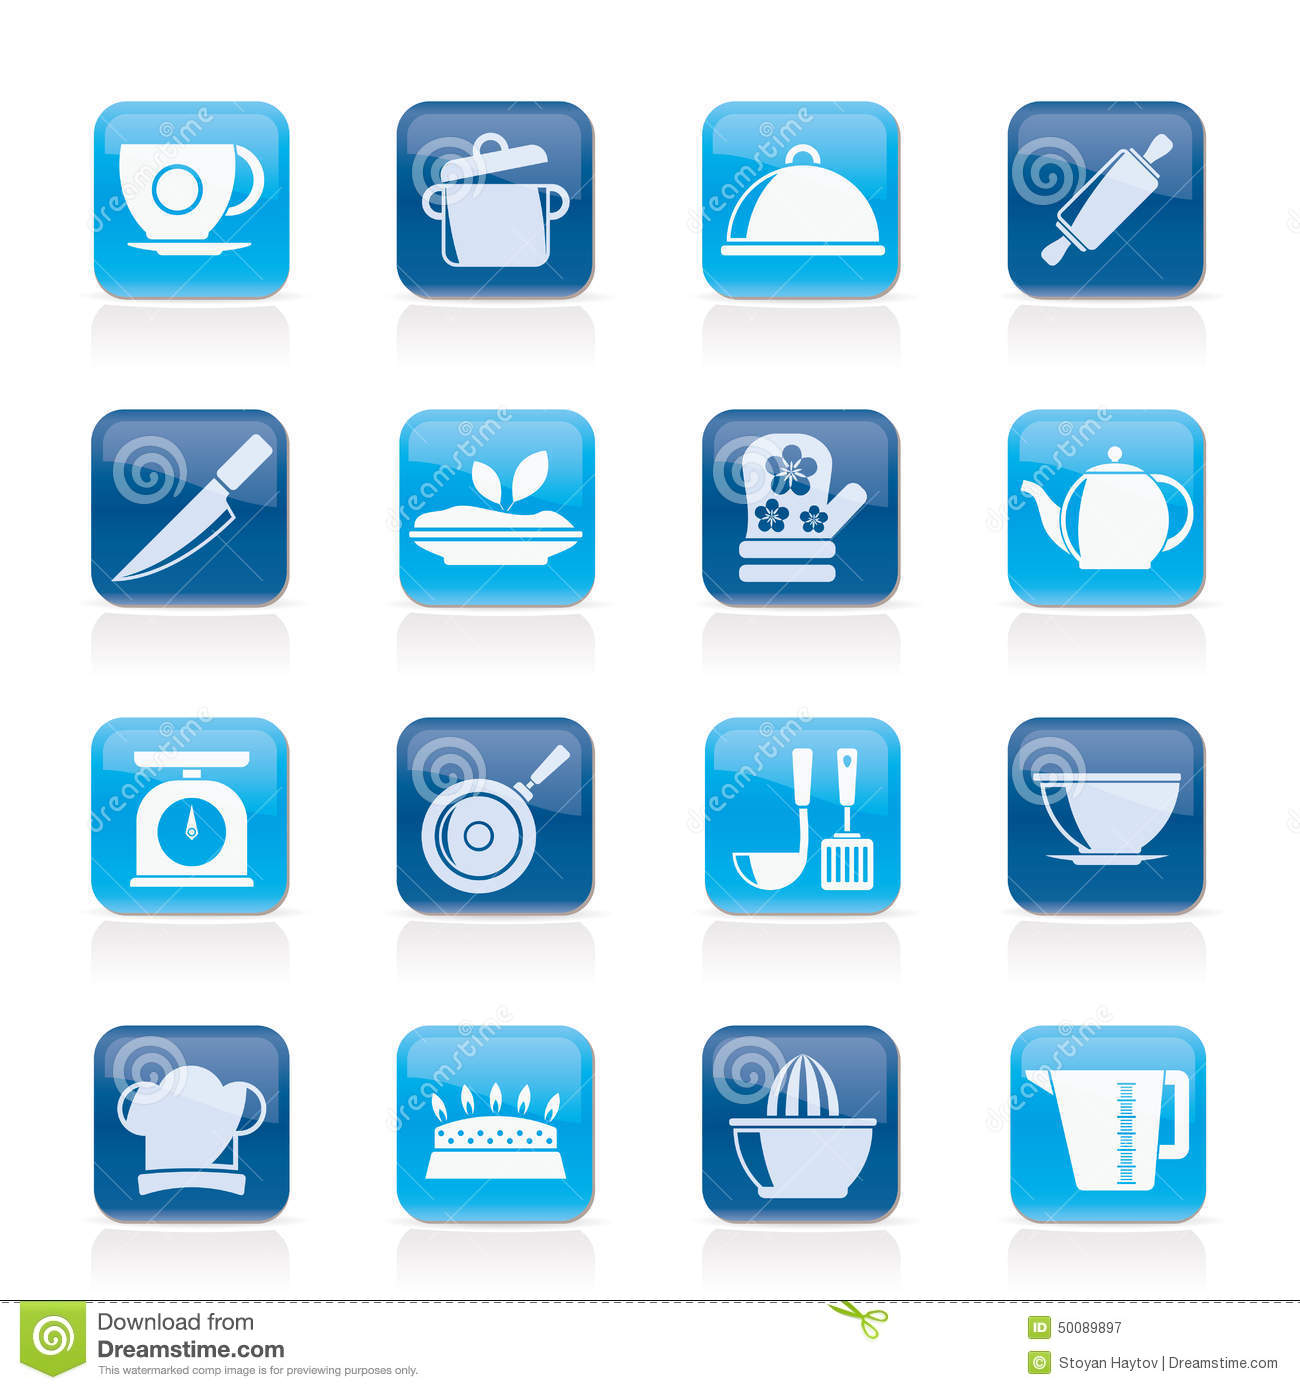 restaurant and kitchen items icons restaurant kitchen items icons vector icon set created print mobile web applications : kitchen items store